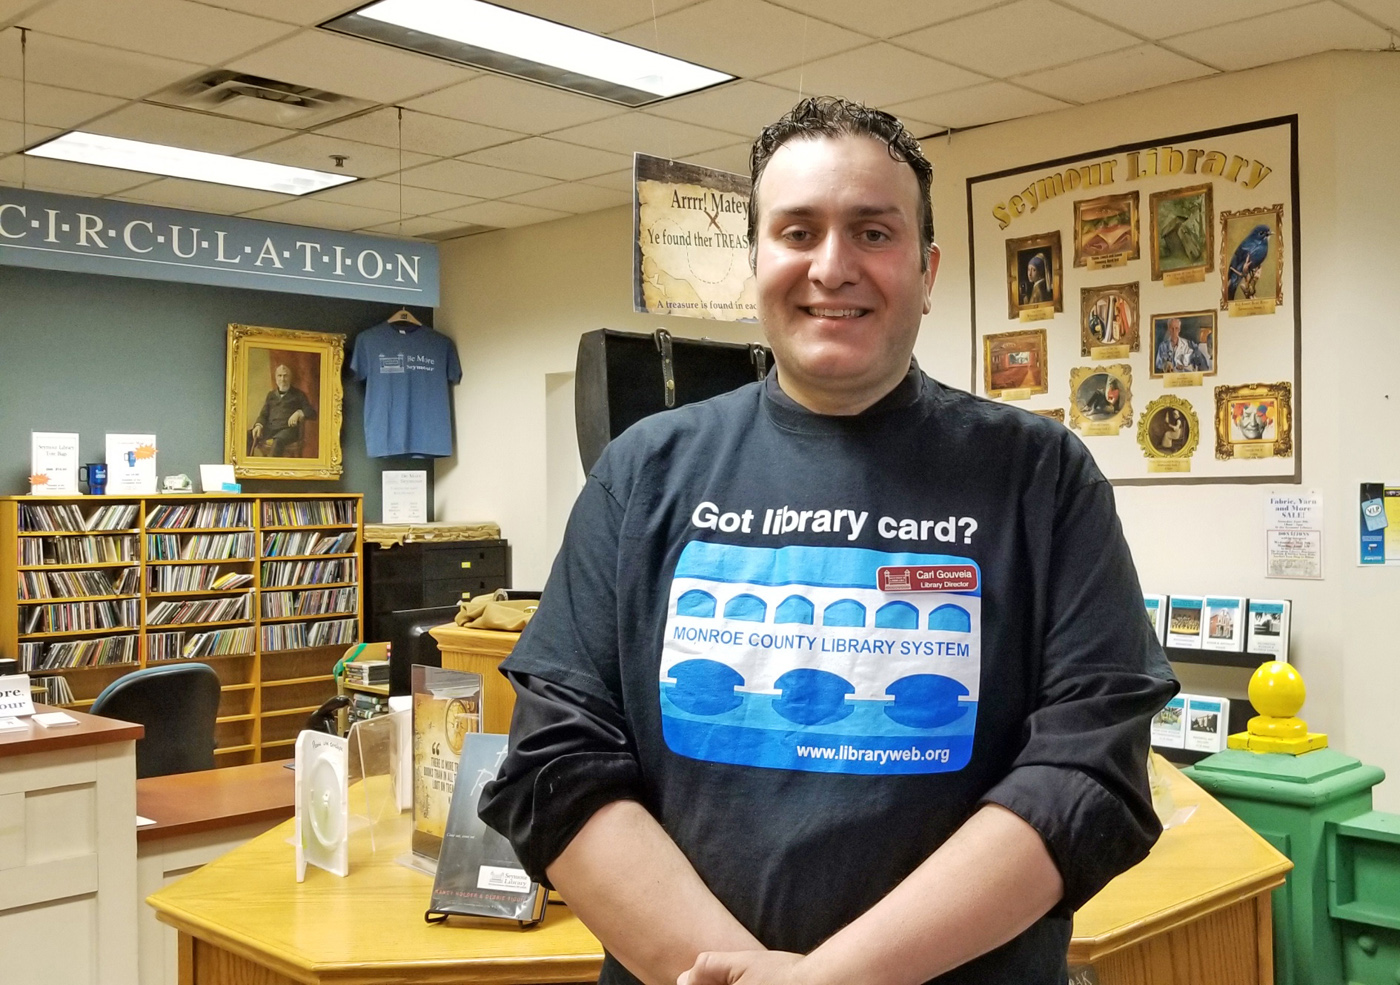 Carl Gouveia is very much at home in Seymour Library where he is Director. His T-shirt message conveys his lifelong passion for libraries. Photo by Dianne Hickerson